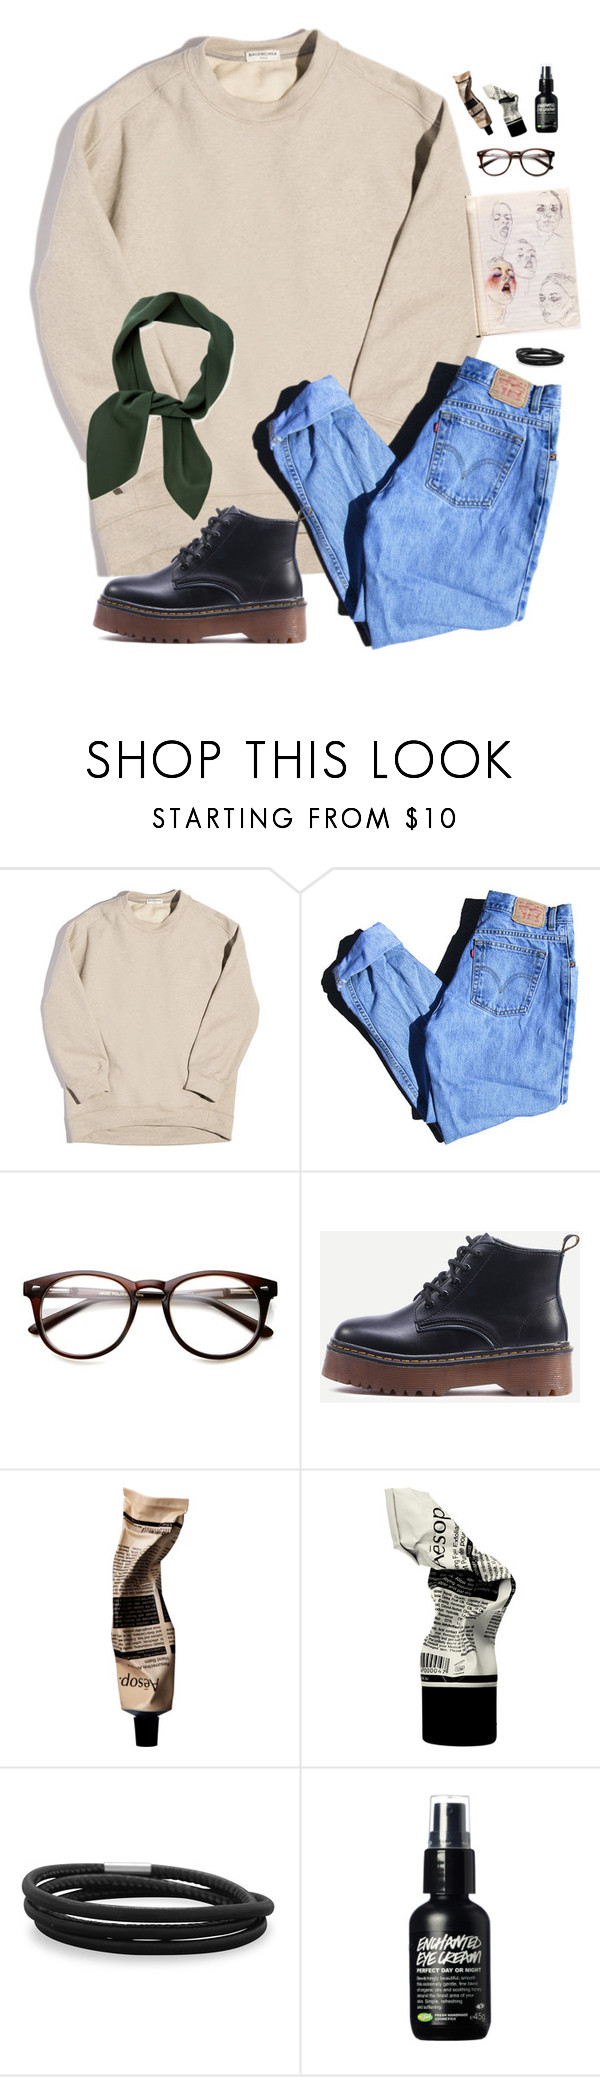 """""""park doodles"""" by preppysoutherners ❤ liked on Polyvore featuring Balenciaga, Levi's, Aesop, BillyTheTree and Chloé"""